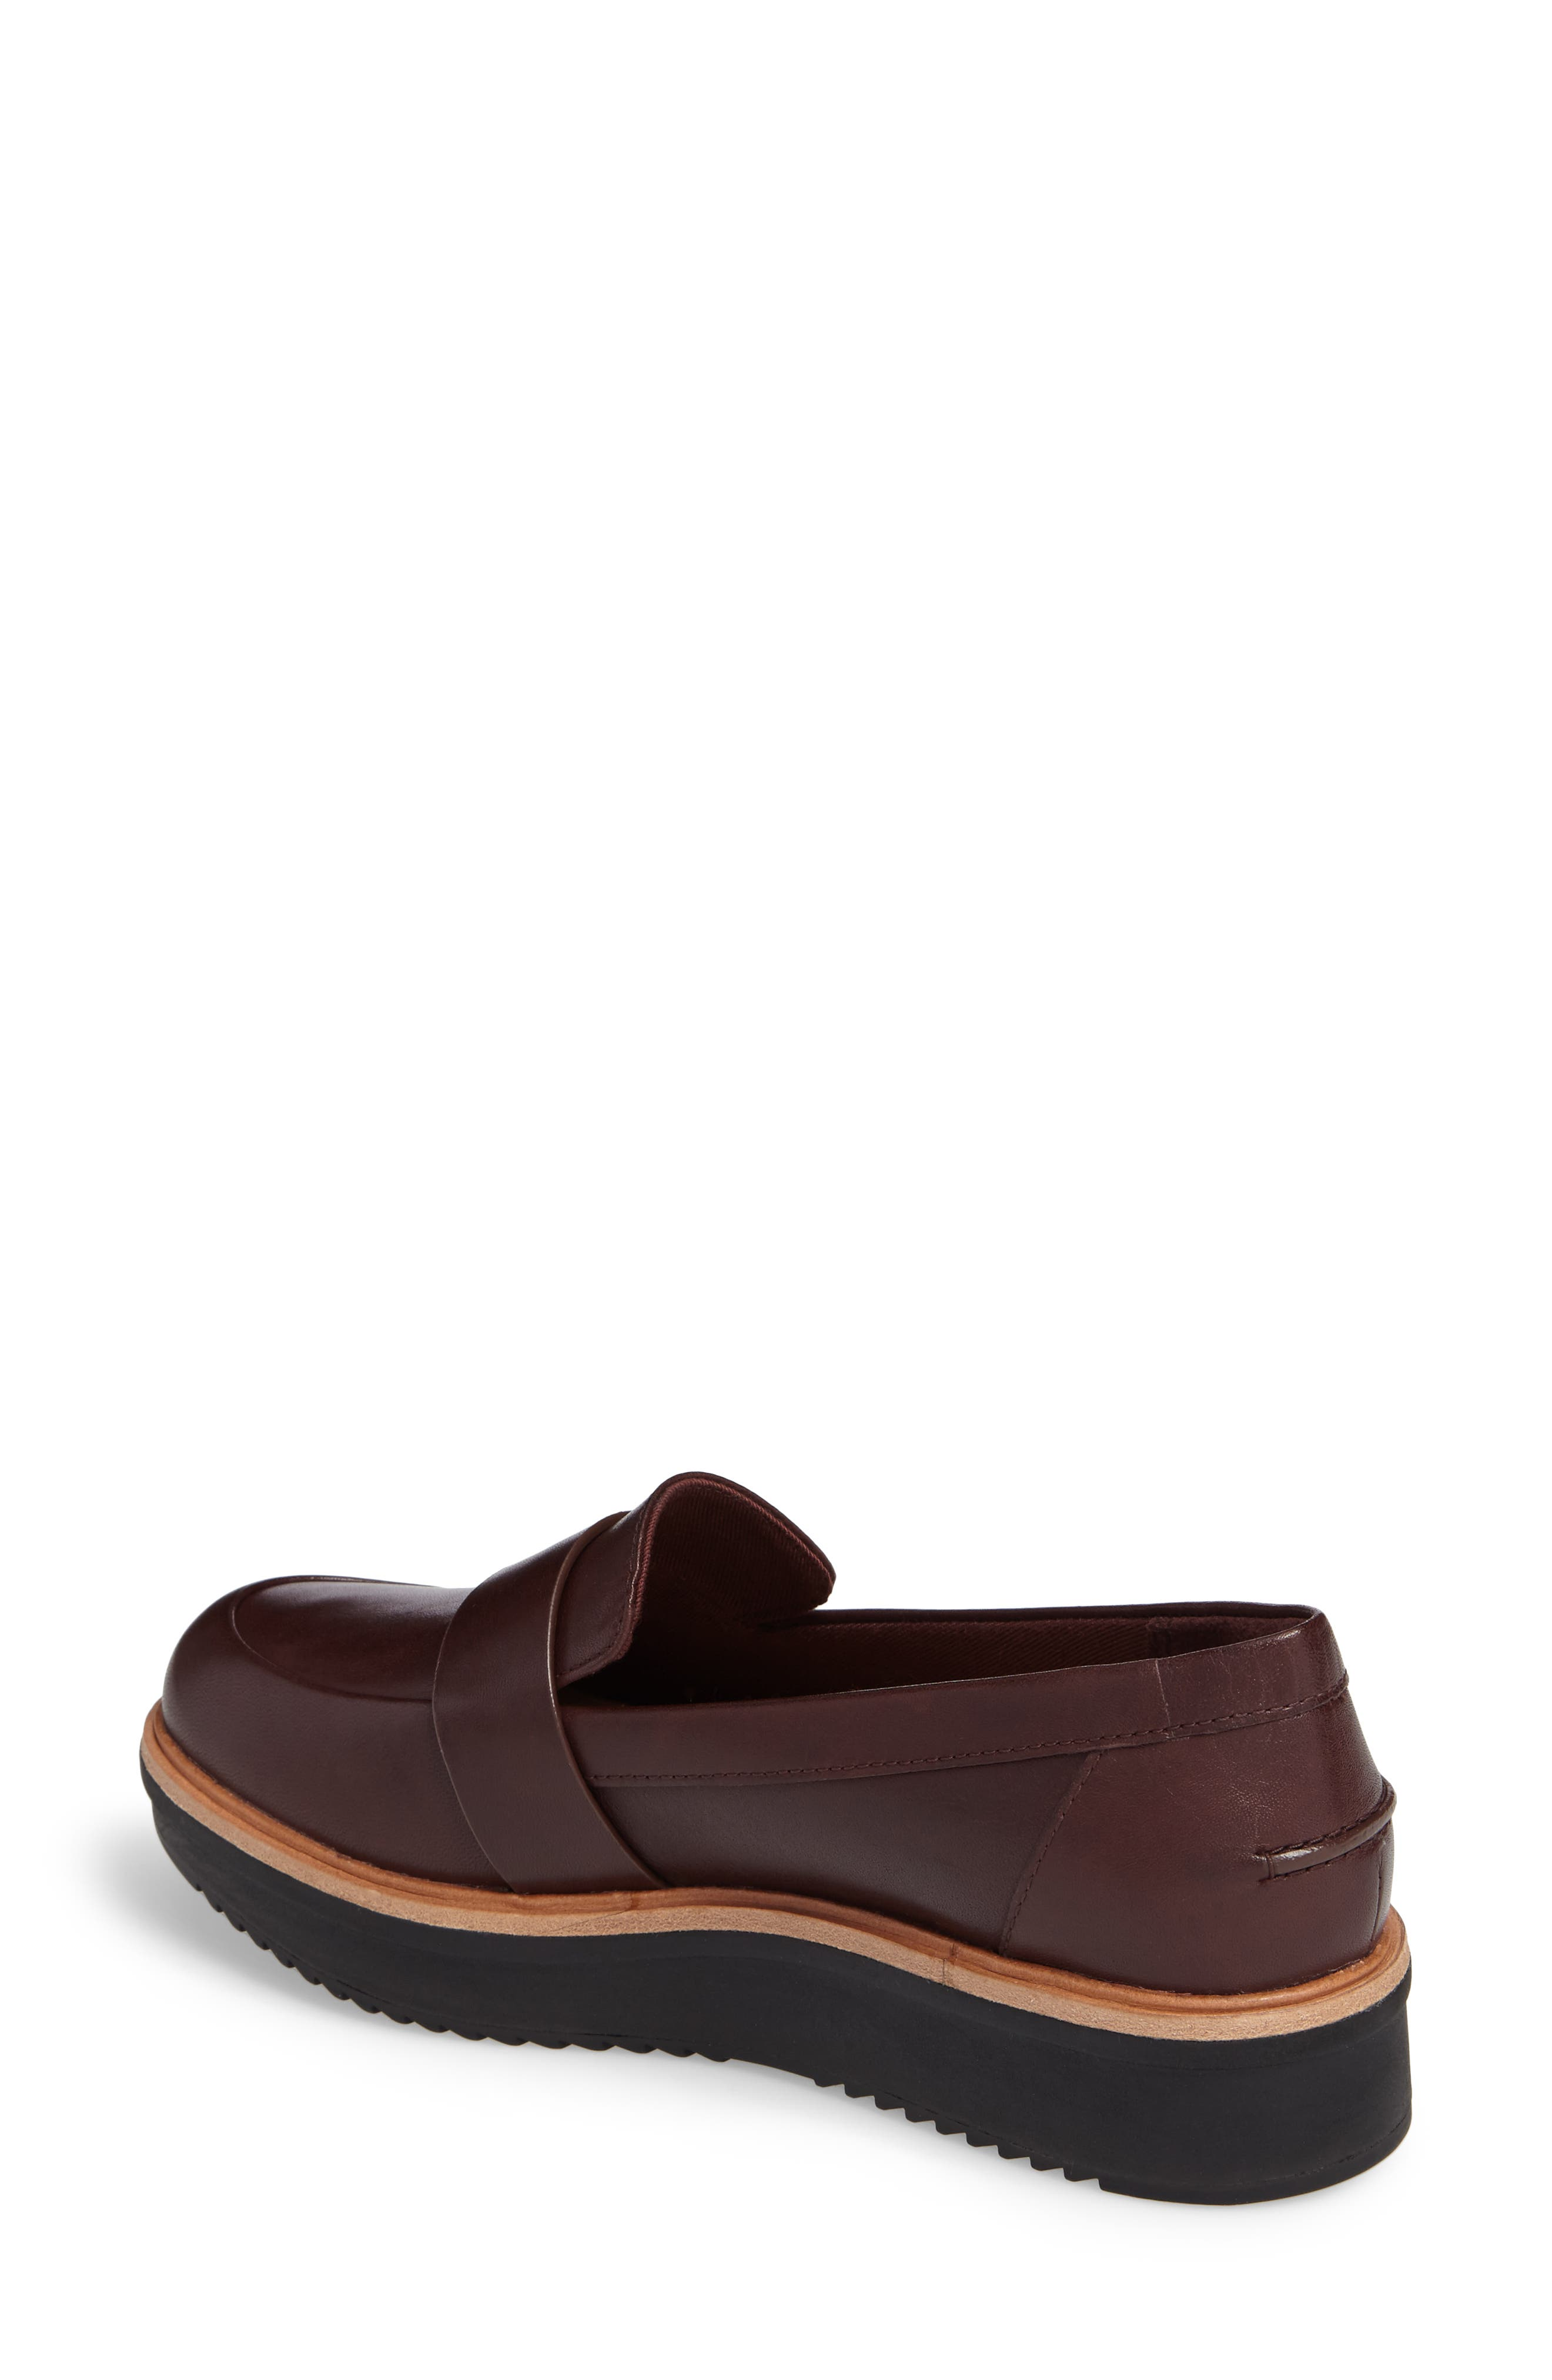 CLARKS<SUP>®</SUP>, Teadale Elsa Loafer, Alternate thumbnail 2, color, BURGUNDY LEATHER